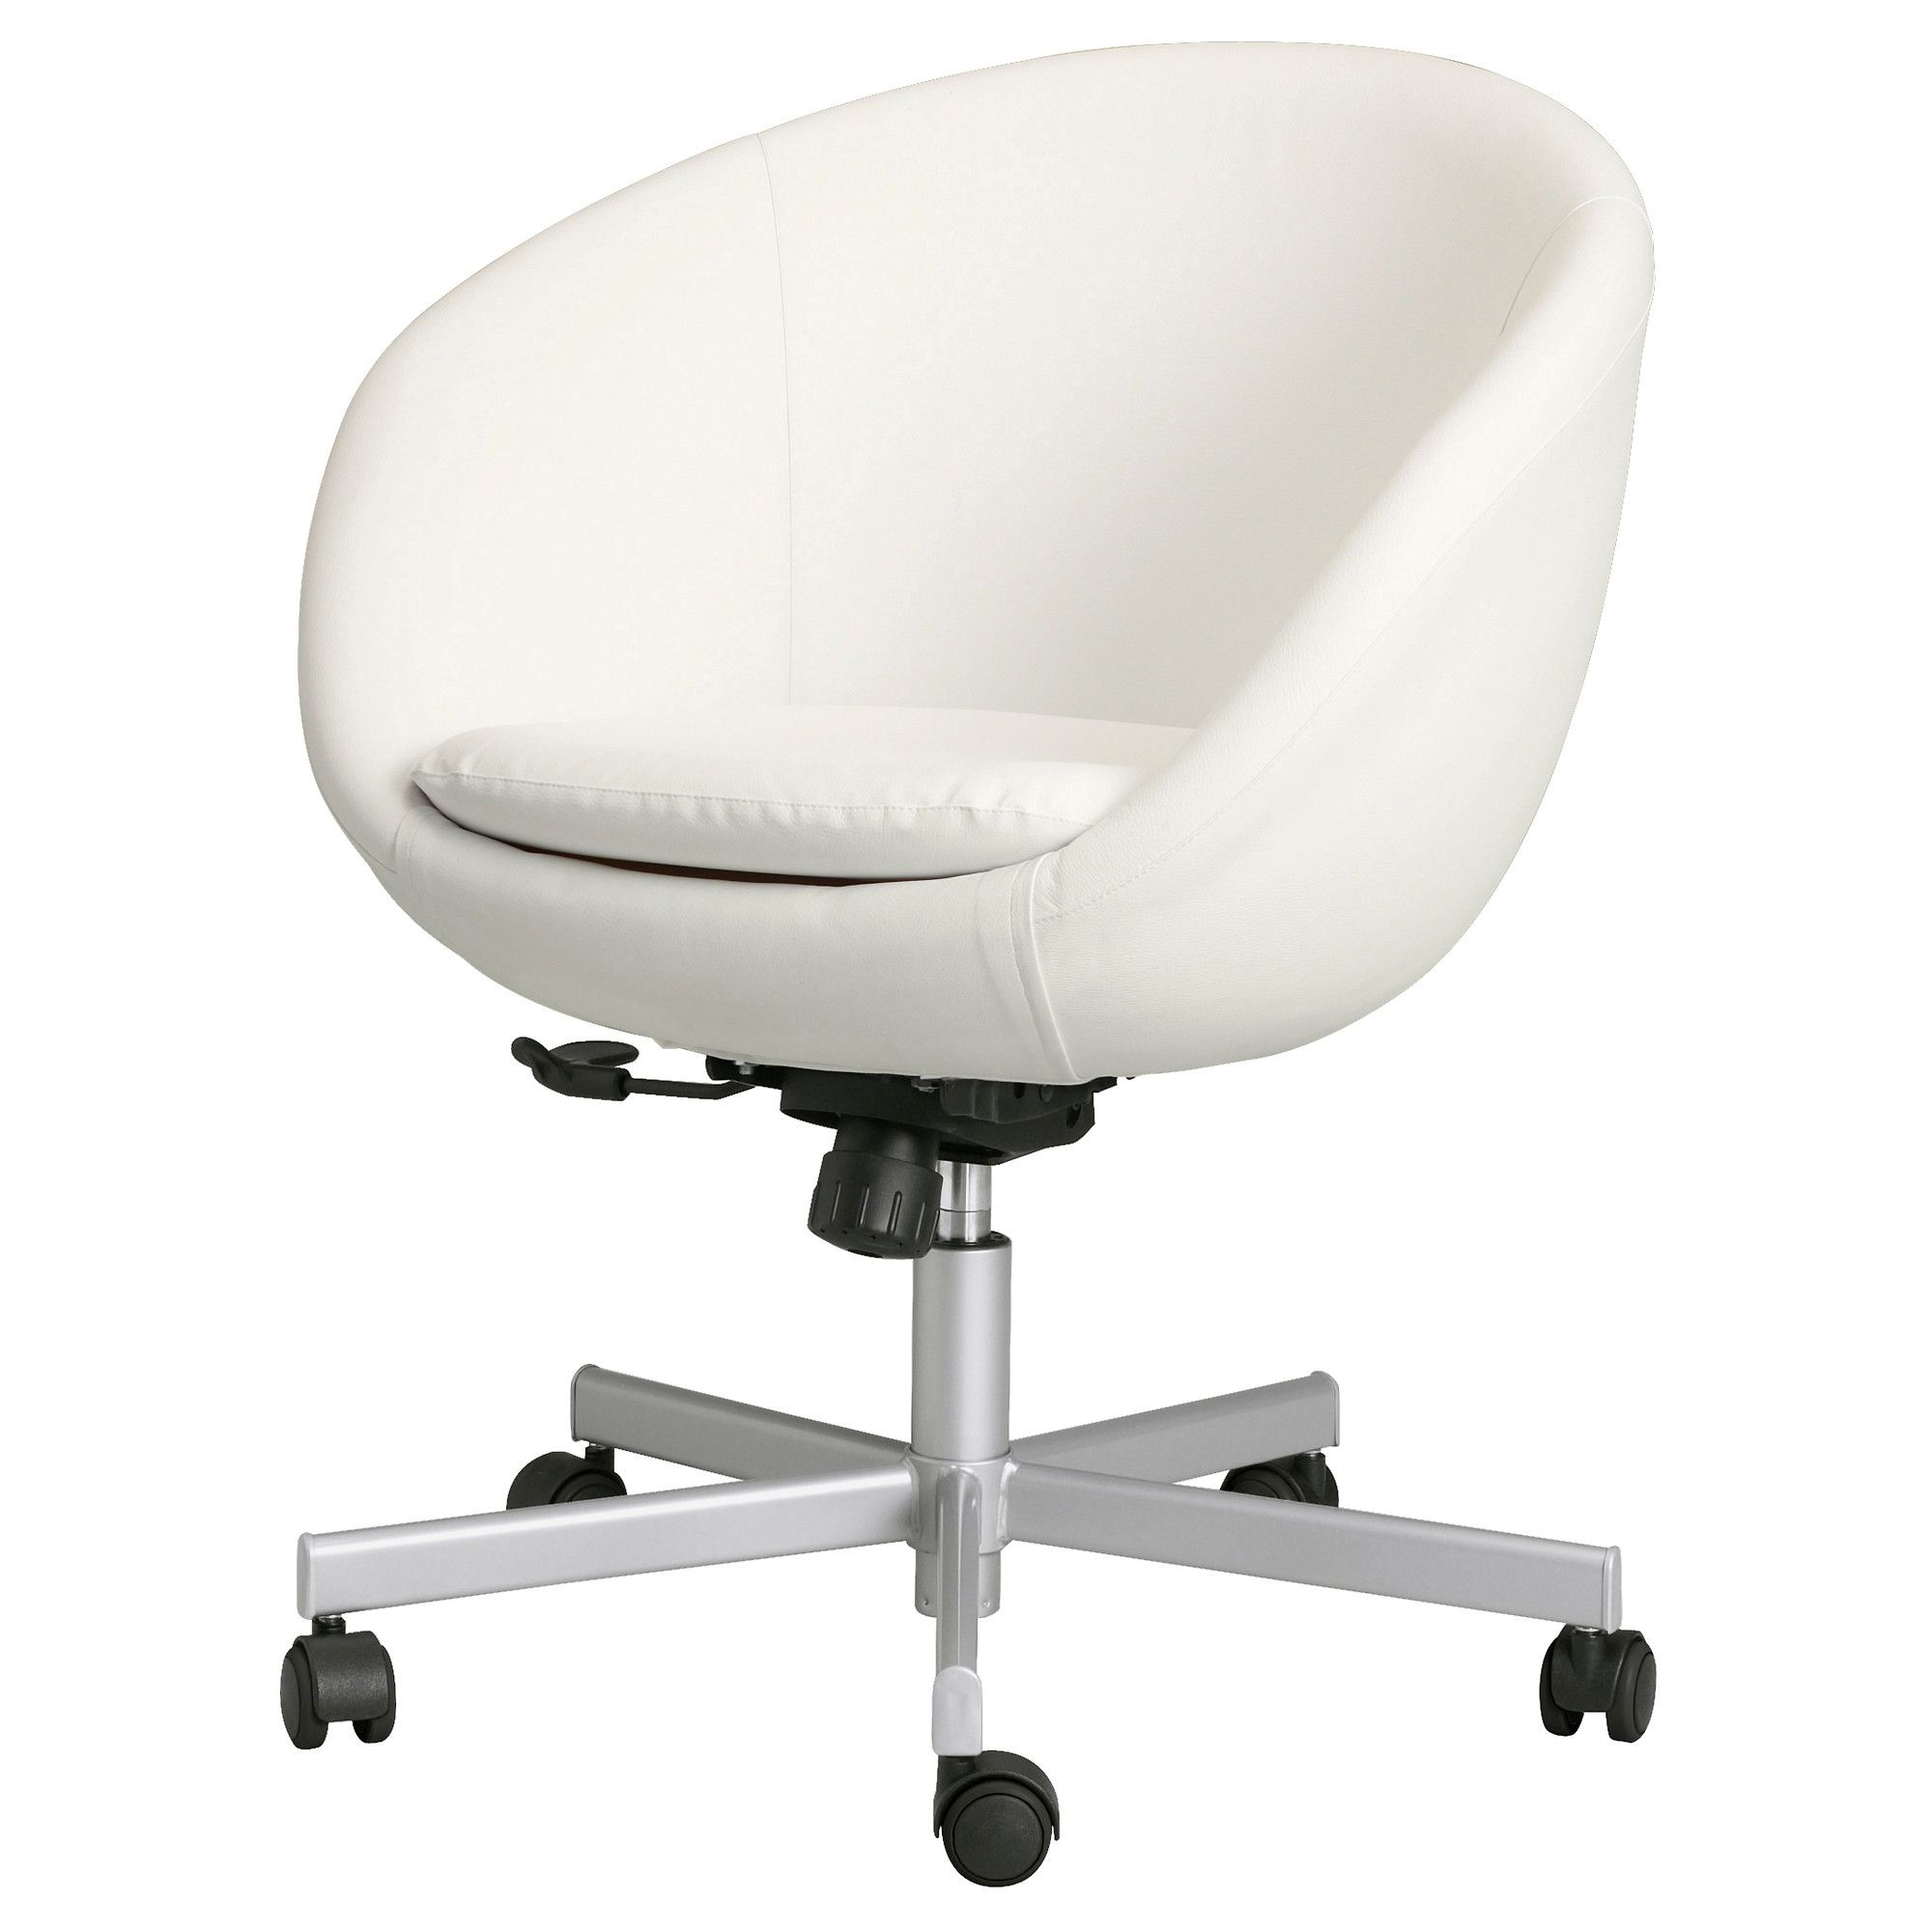 Skruvsta Swivel Chair Dxracer Gaming India Idhult White Ikea Key Features